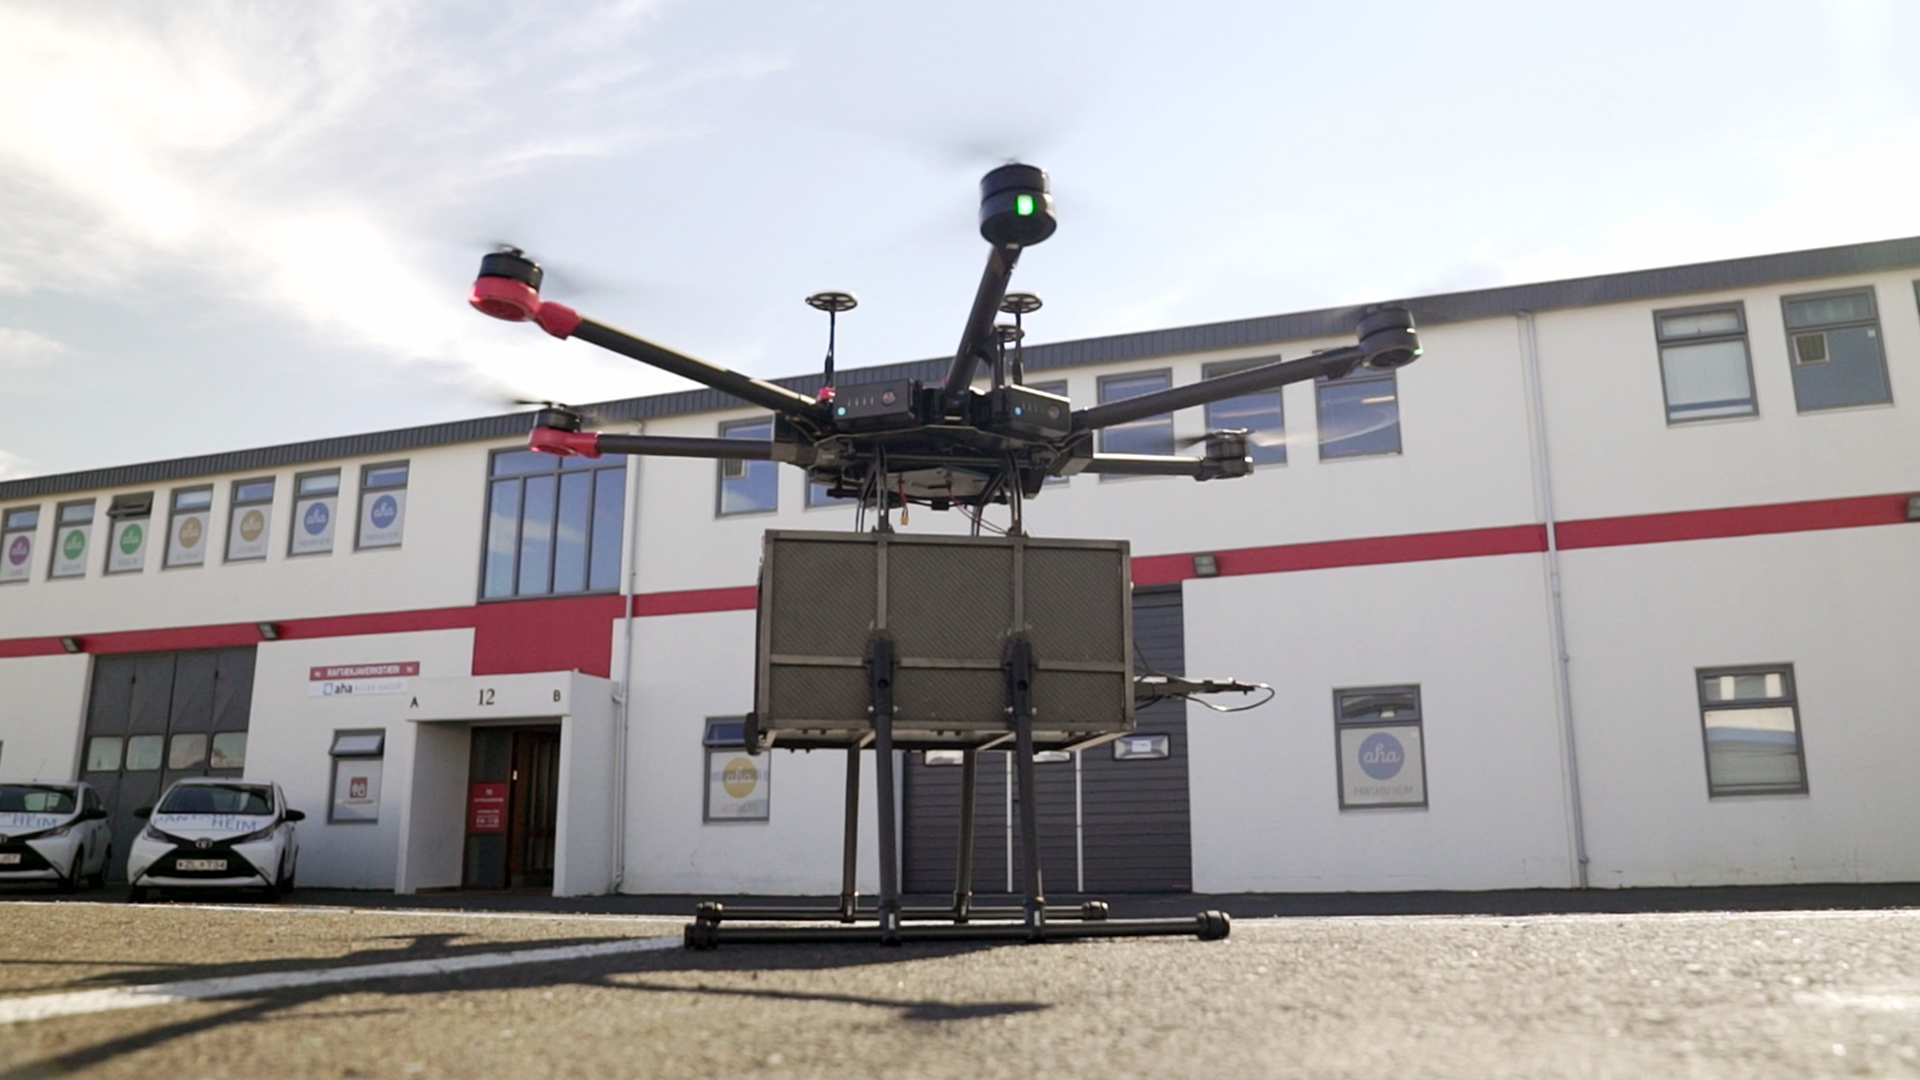 Iceland now has a drone delivery service to deliver food via Flytrex